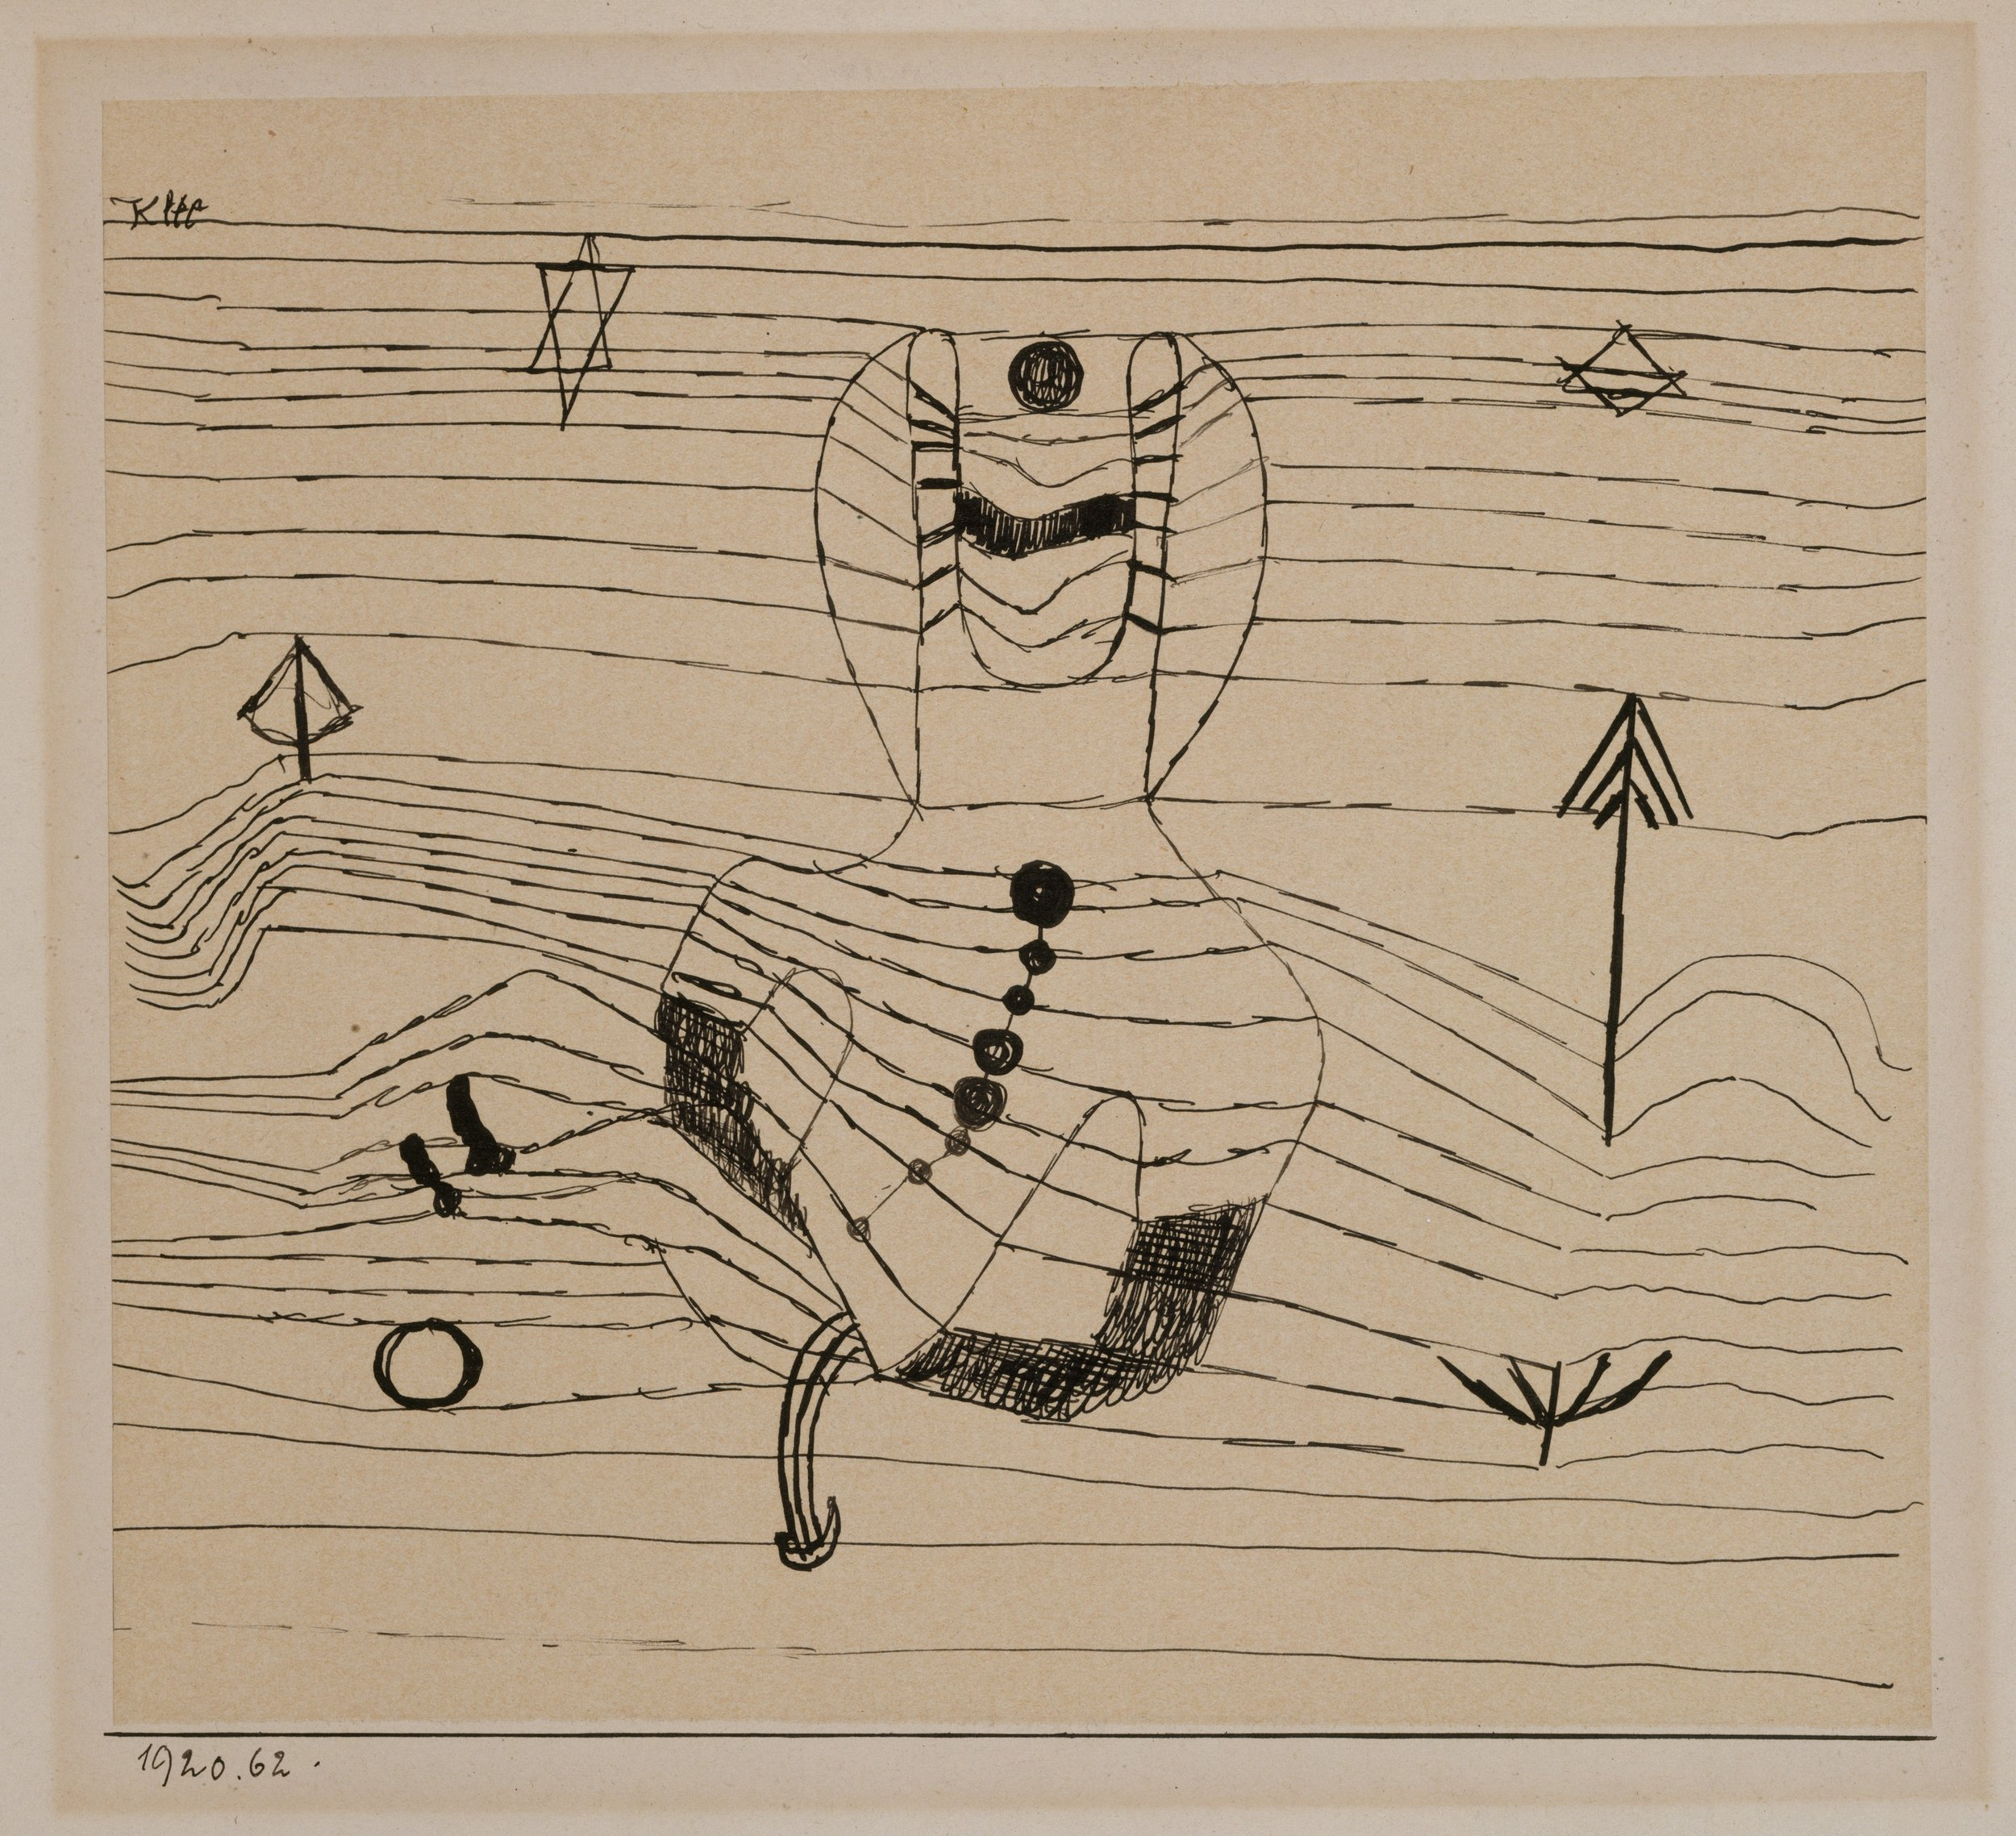 Paul Klee - Rider Unhorsed and Bewitched - Ink on paper mounted on cardboard - 1920